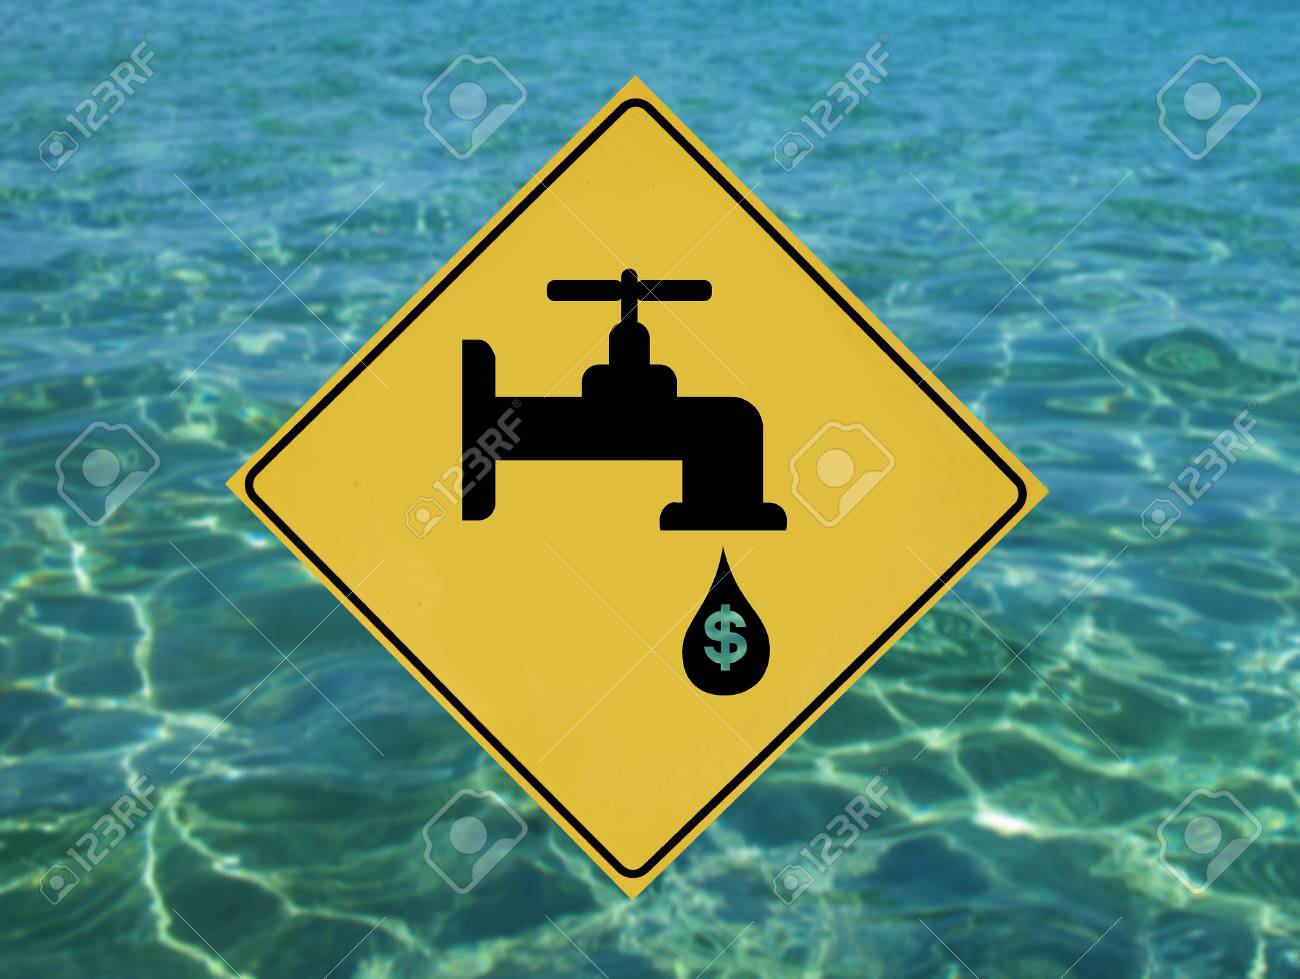 Yellow label with traffic leaking faucet pictogram - 57331645